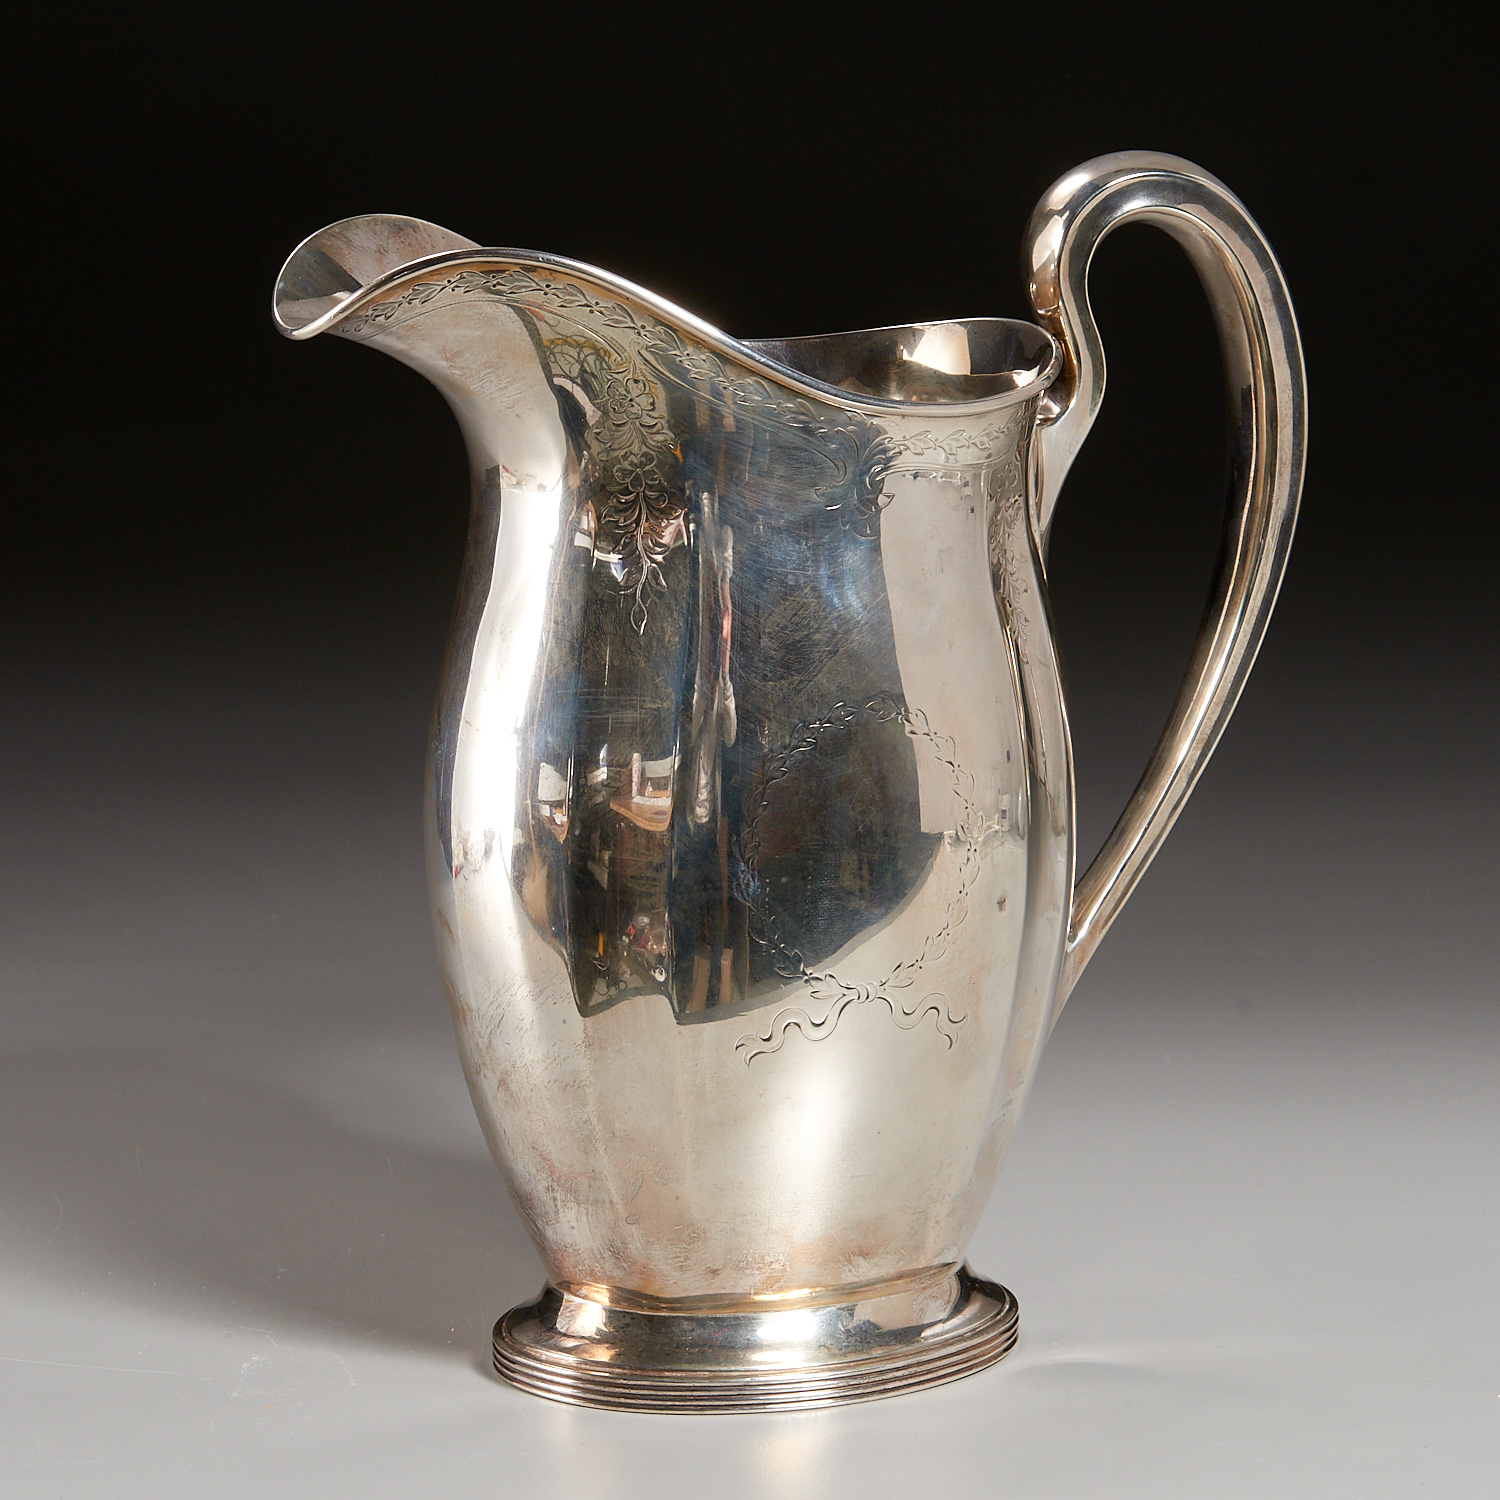 Lot 45 - American Sterling Silver Water Pitcher